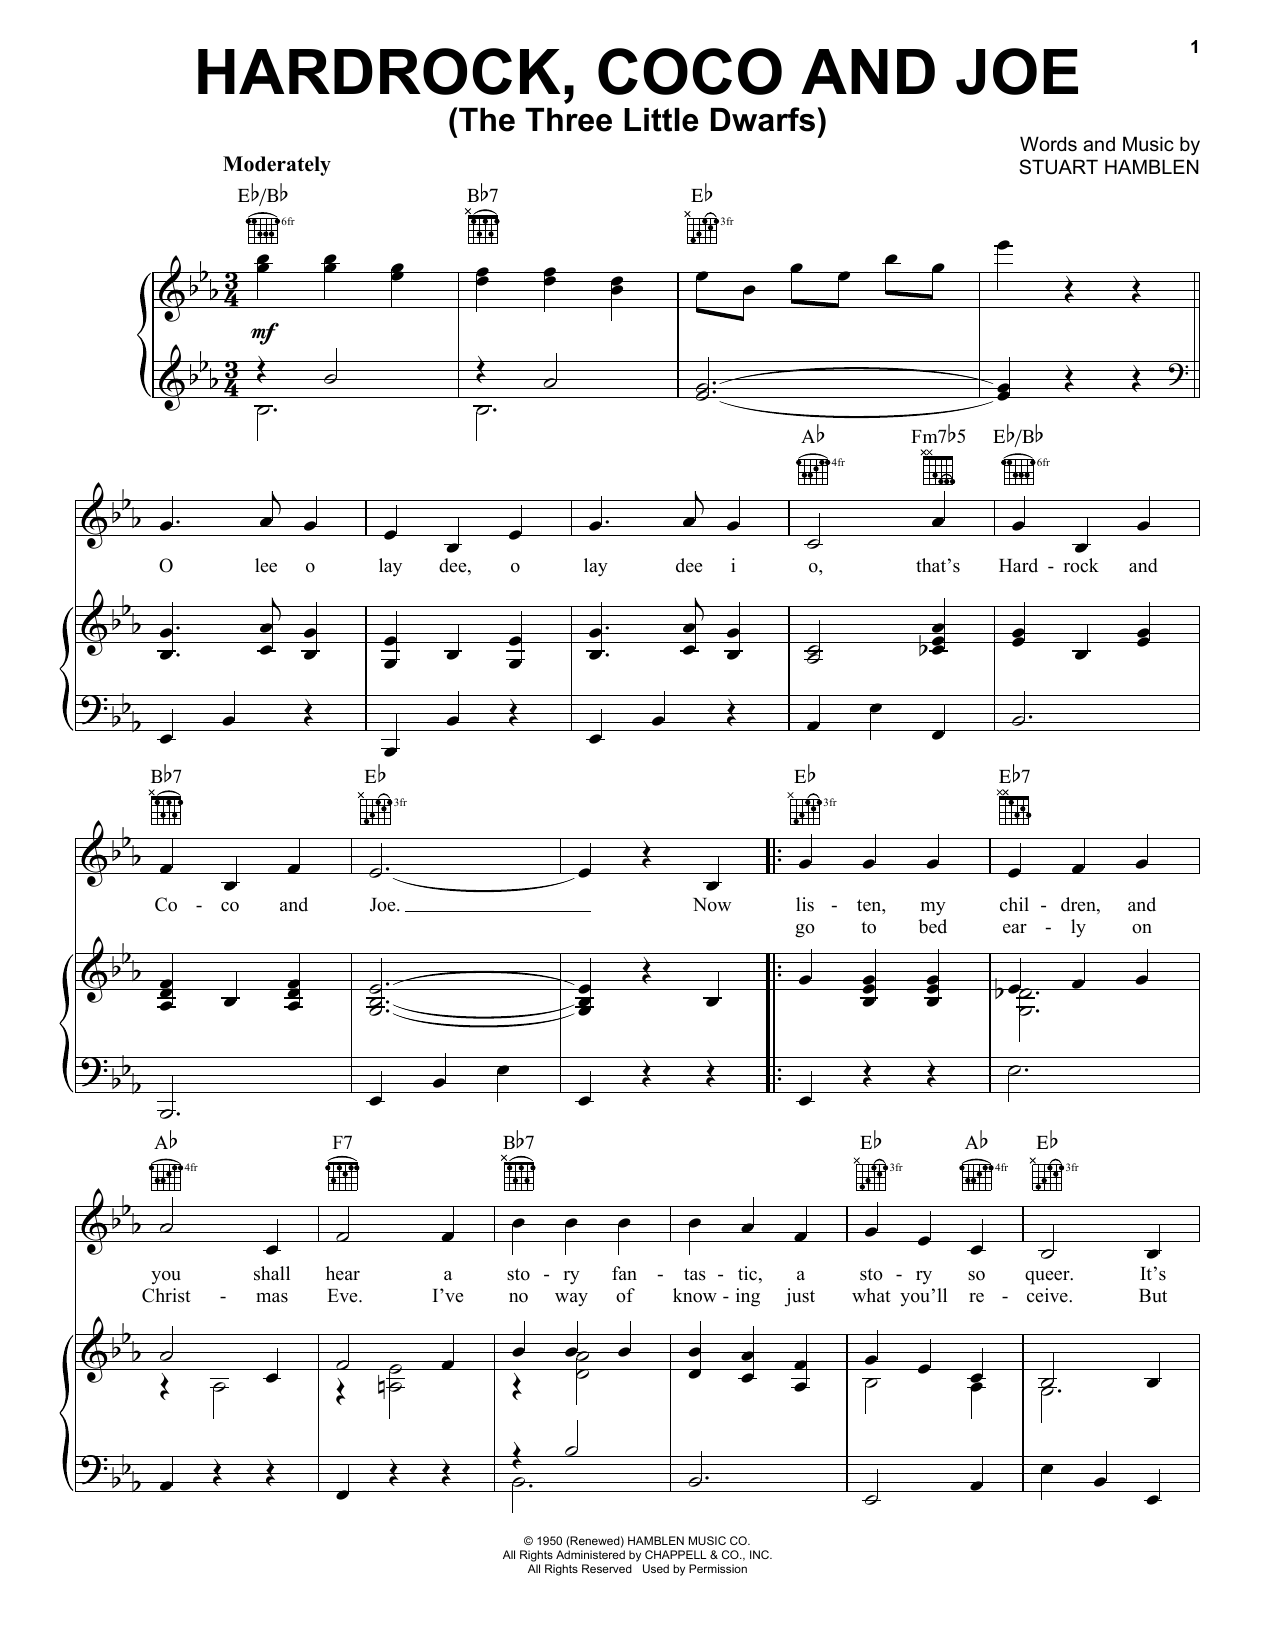 Gene Autry Hardrock, Coco and Joe (The Three Little Dwarfs) sheet music notes and chords. Download Printable PDF.